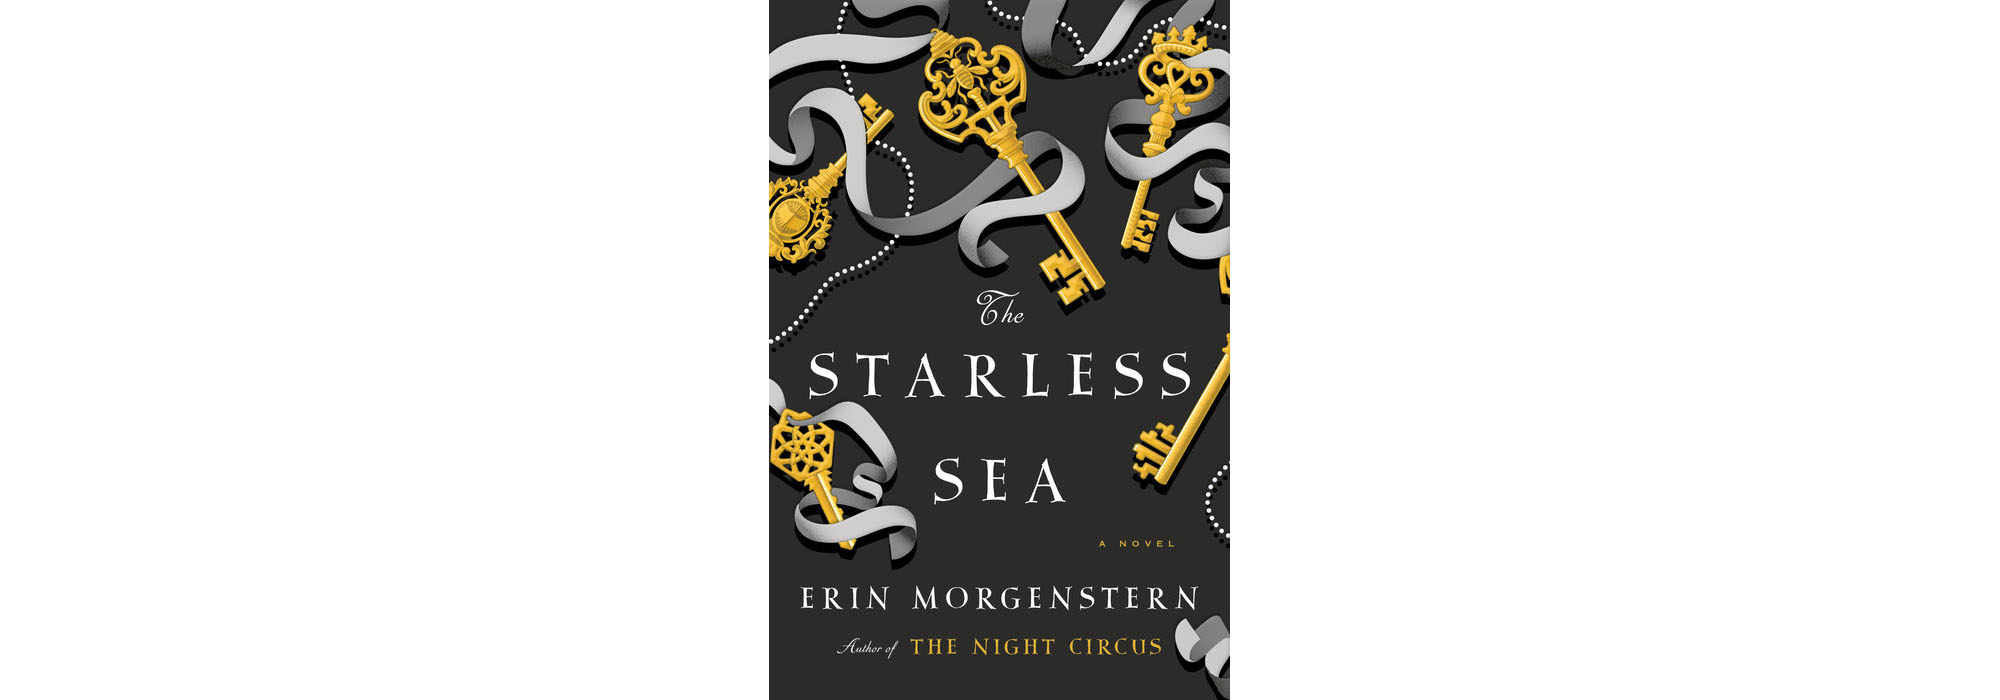 The Starless Sea, by Erin Morgenstern